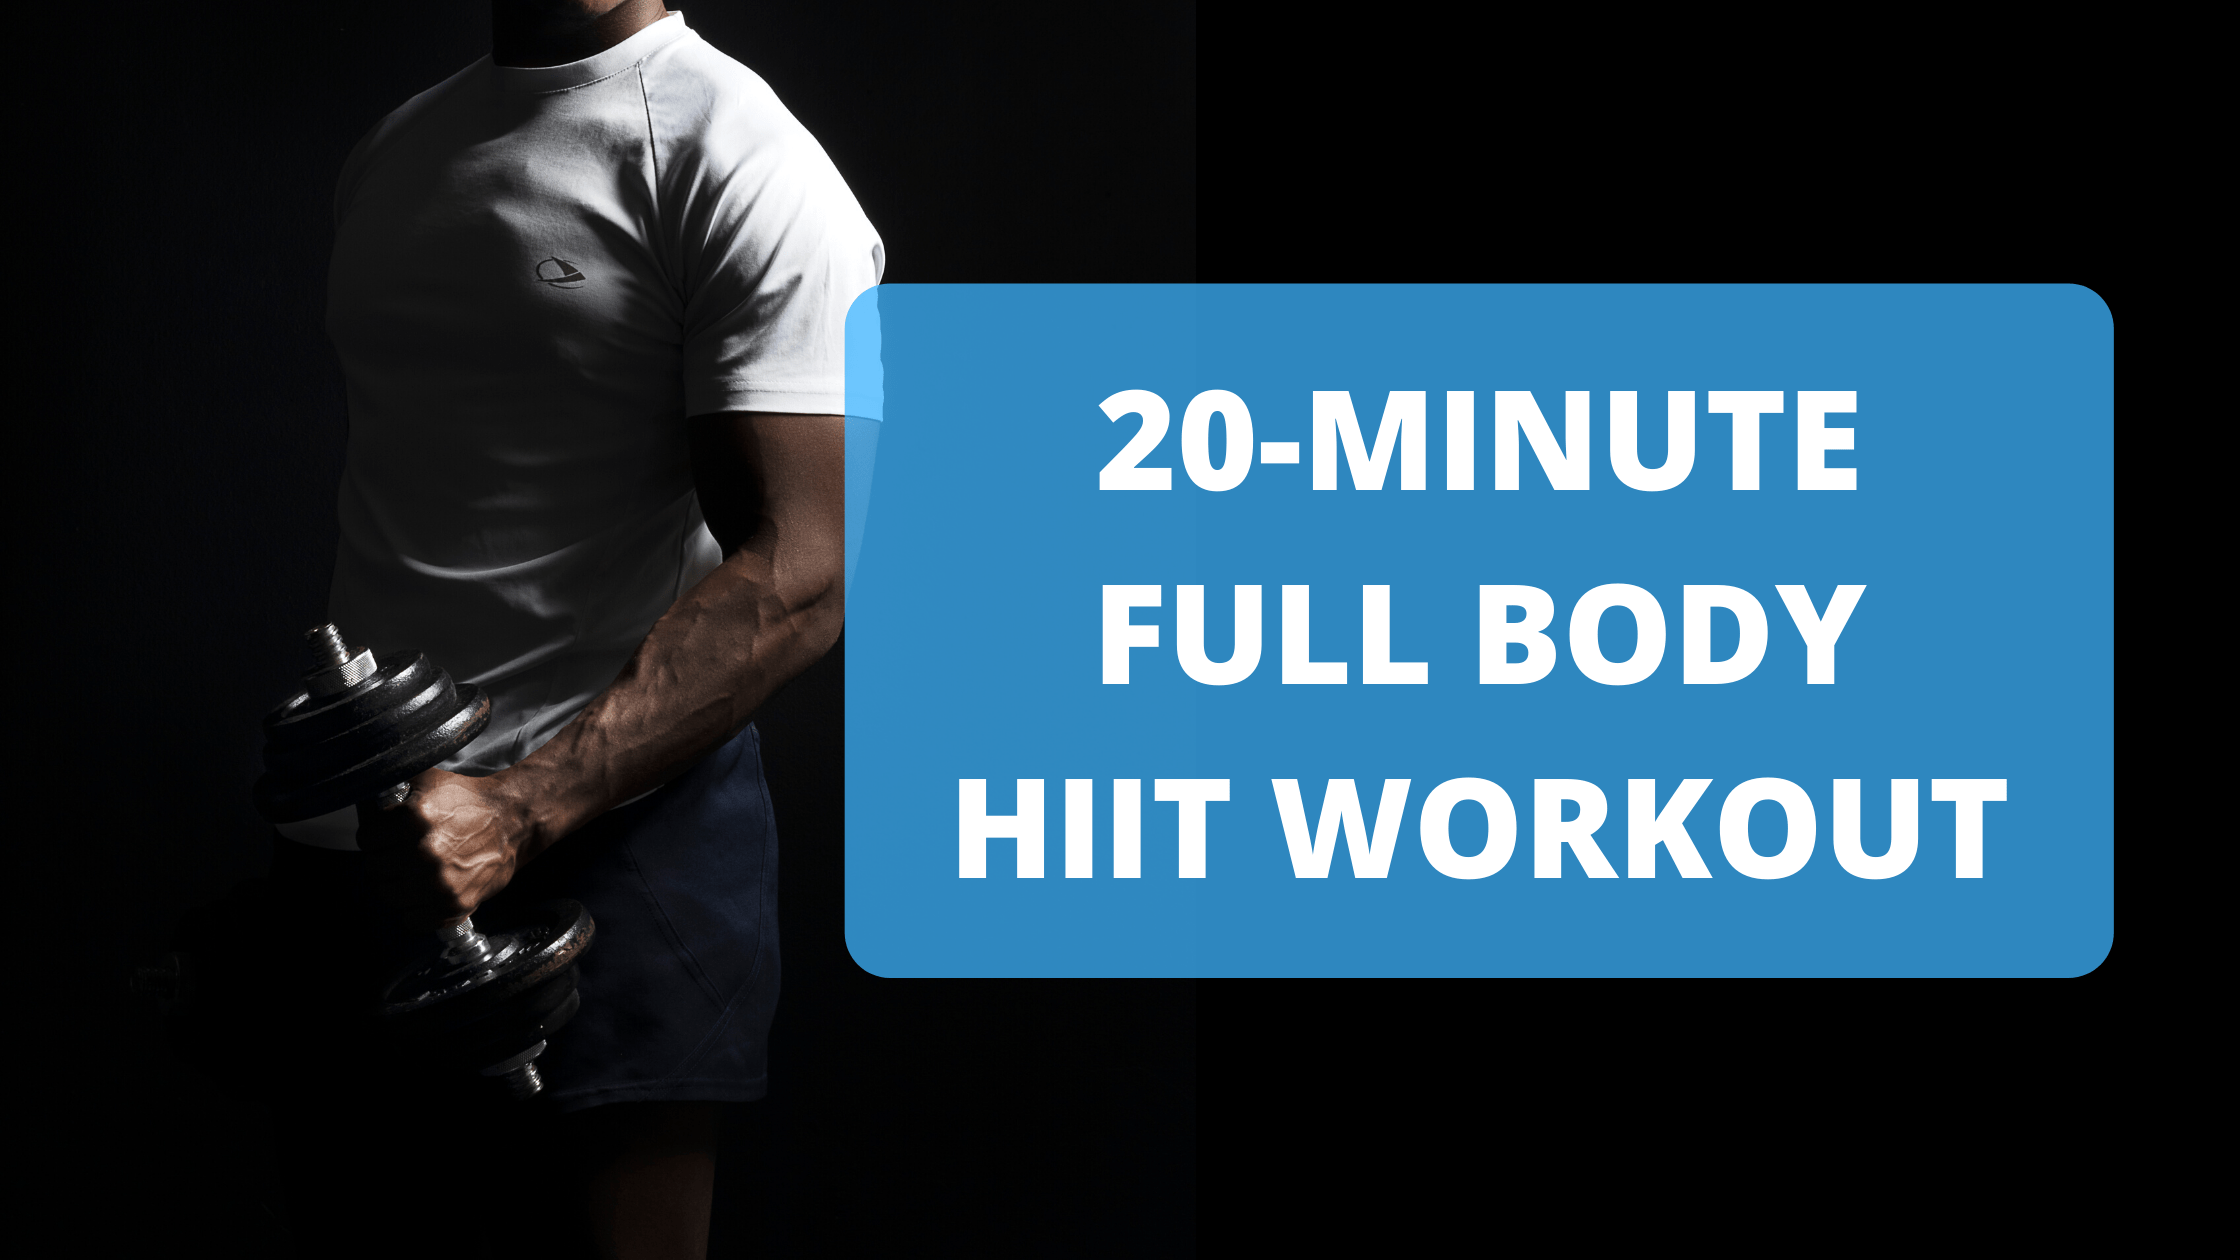 Full Body HIIT Workout Done in 20 Minutes